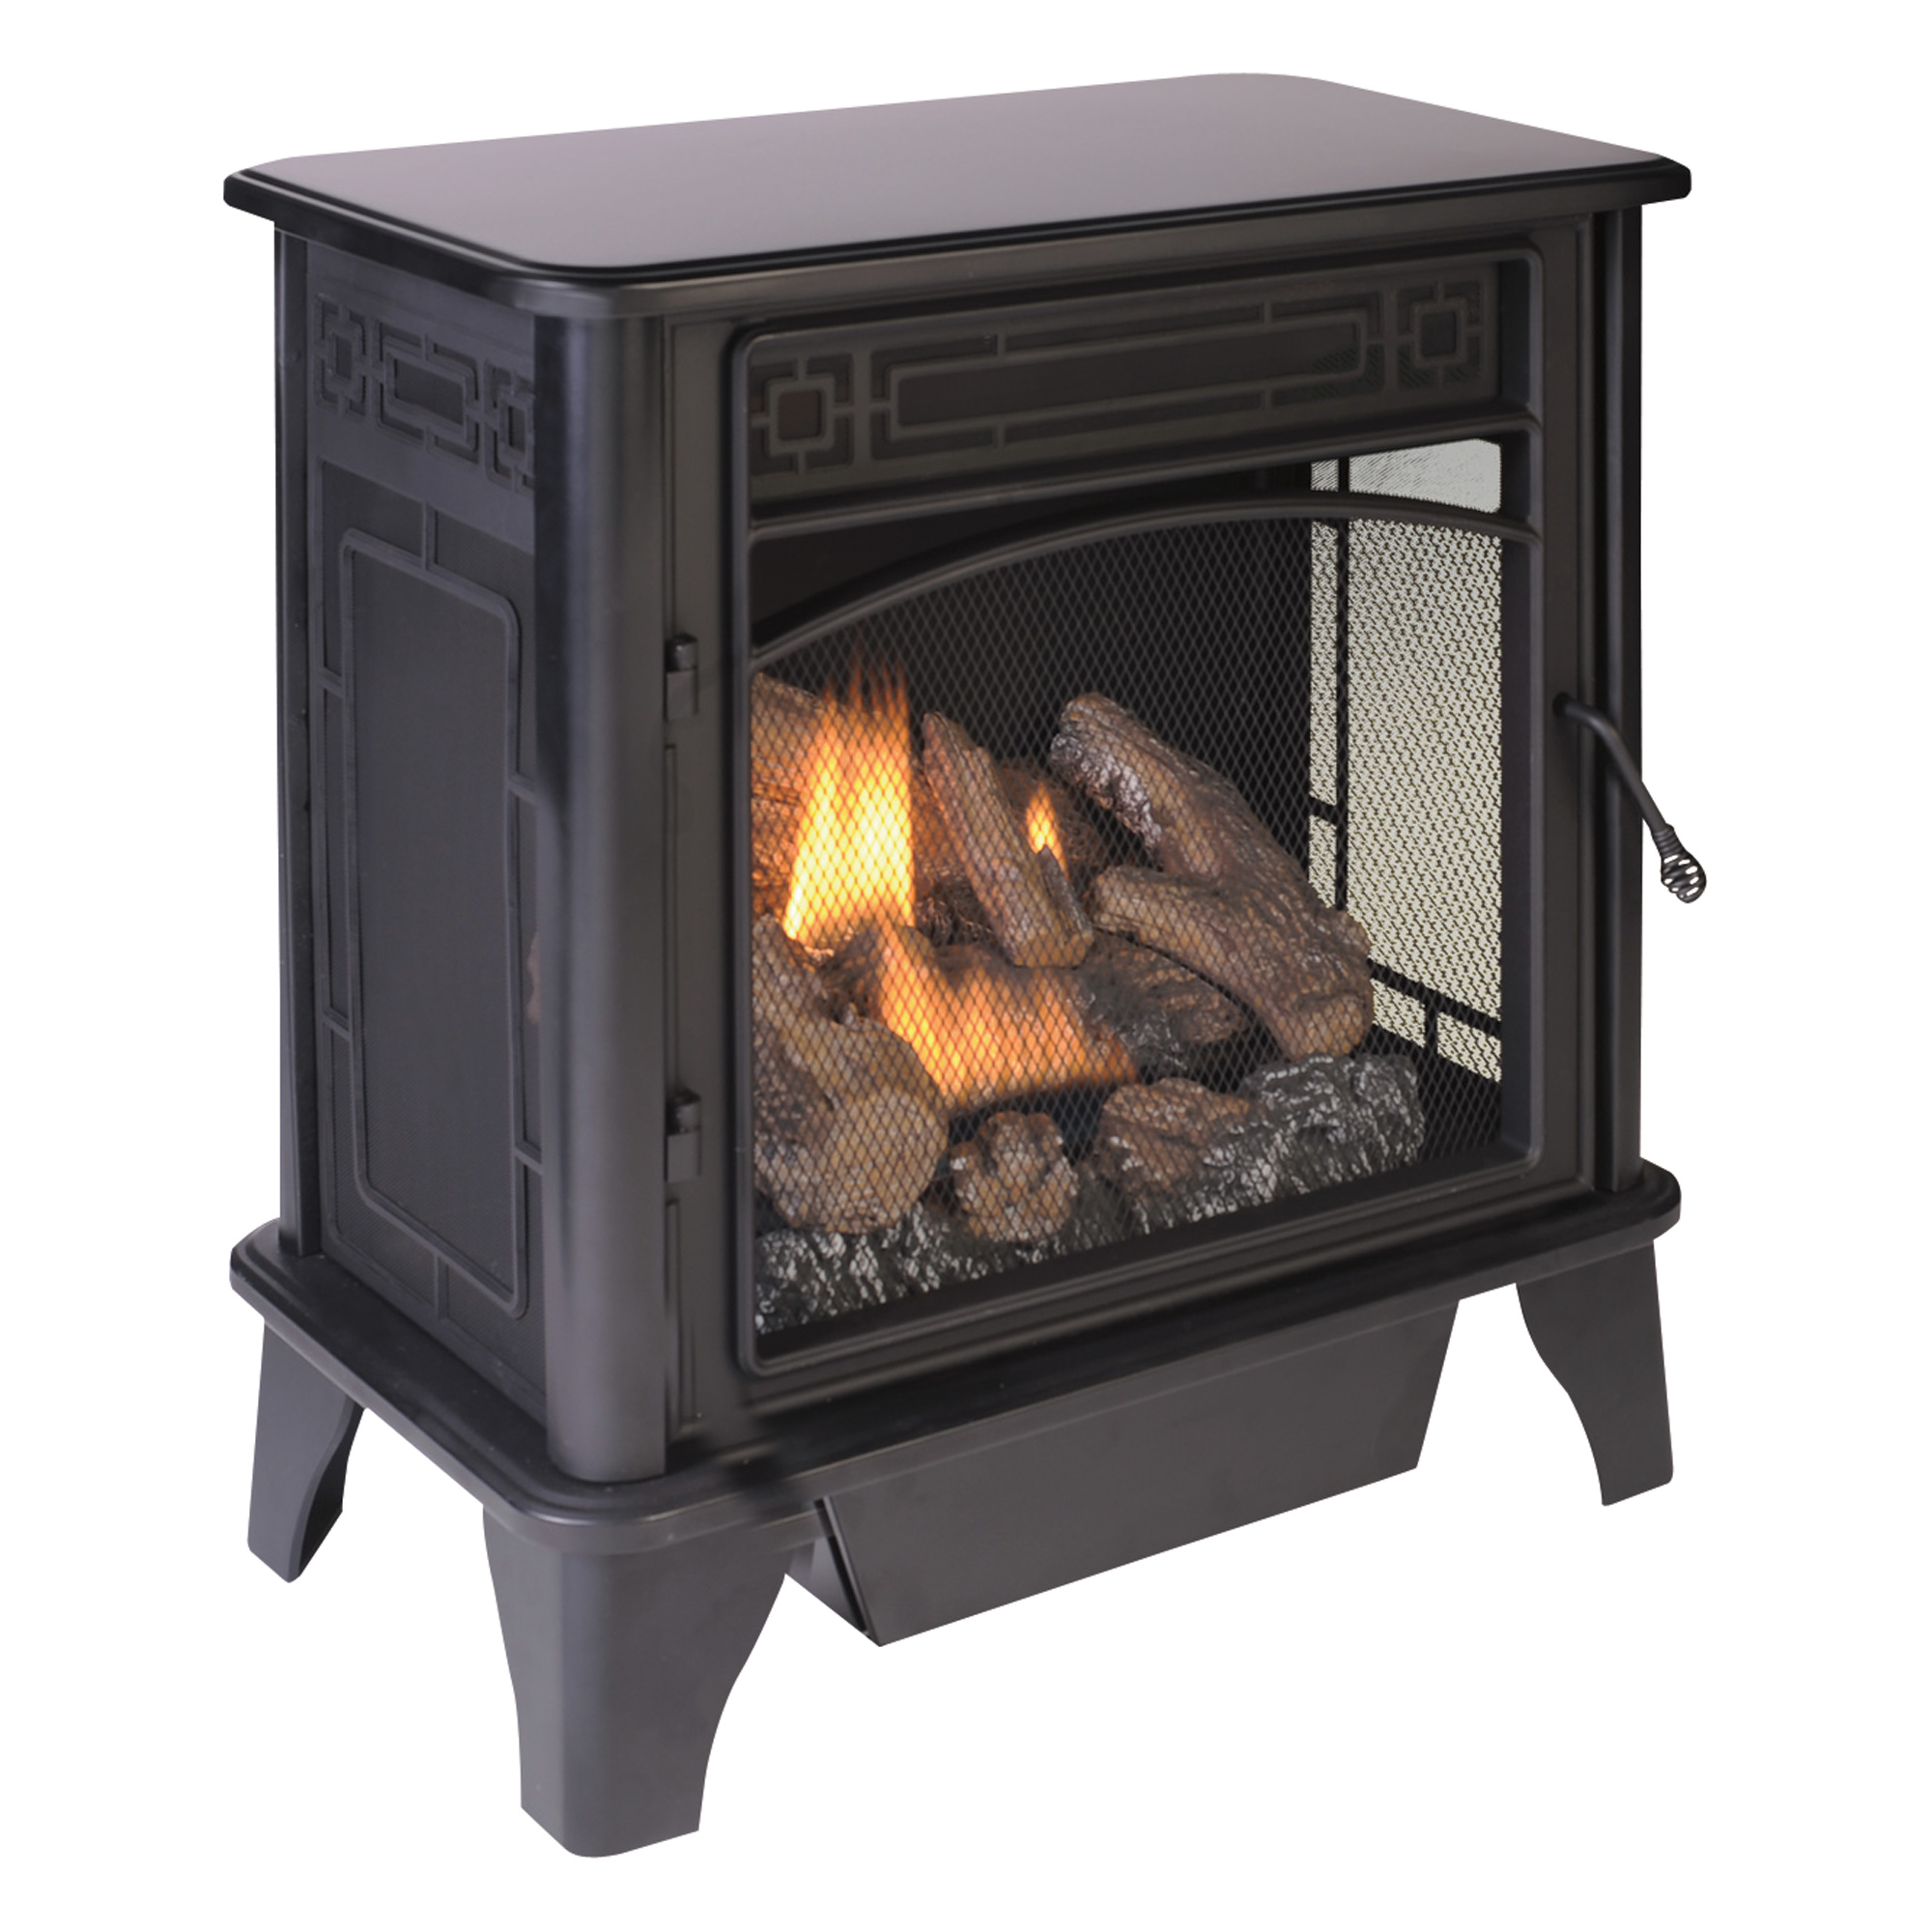 fuel stove 23 000 btu 850 sq ft heating area model pcsd25rt